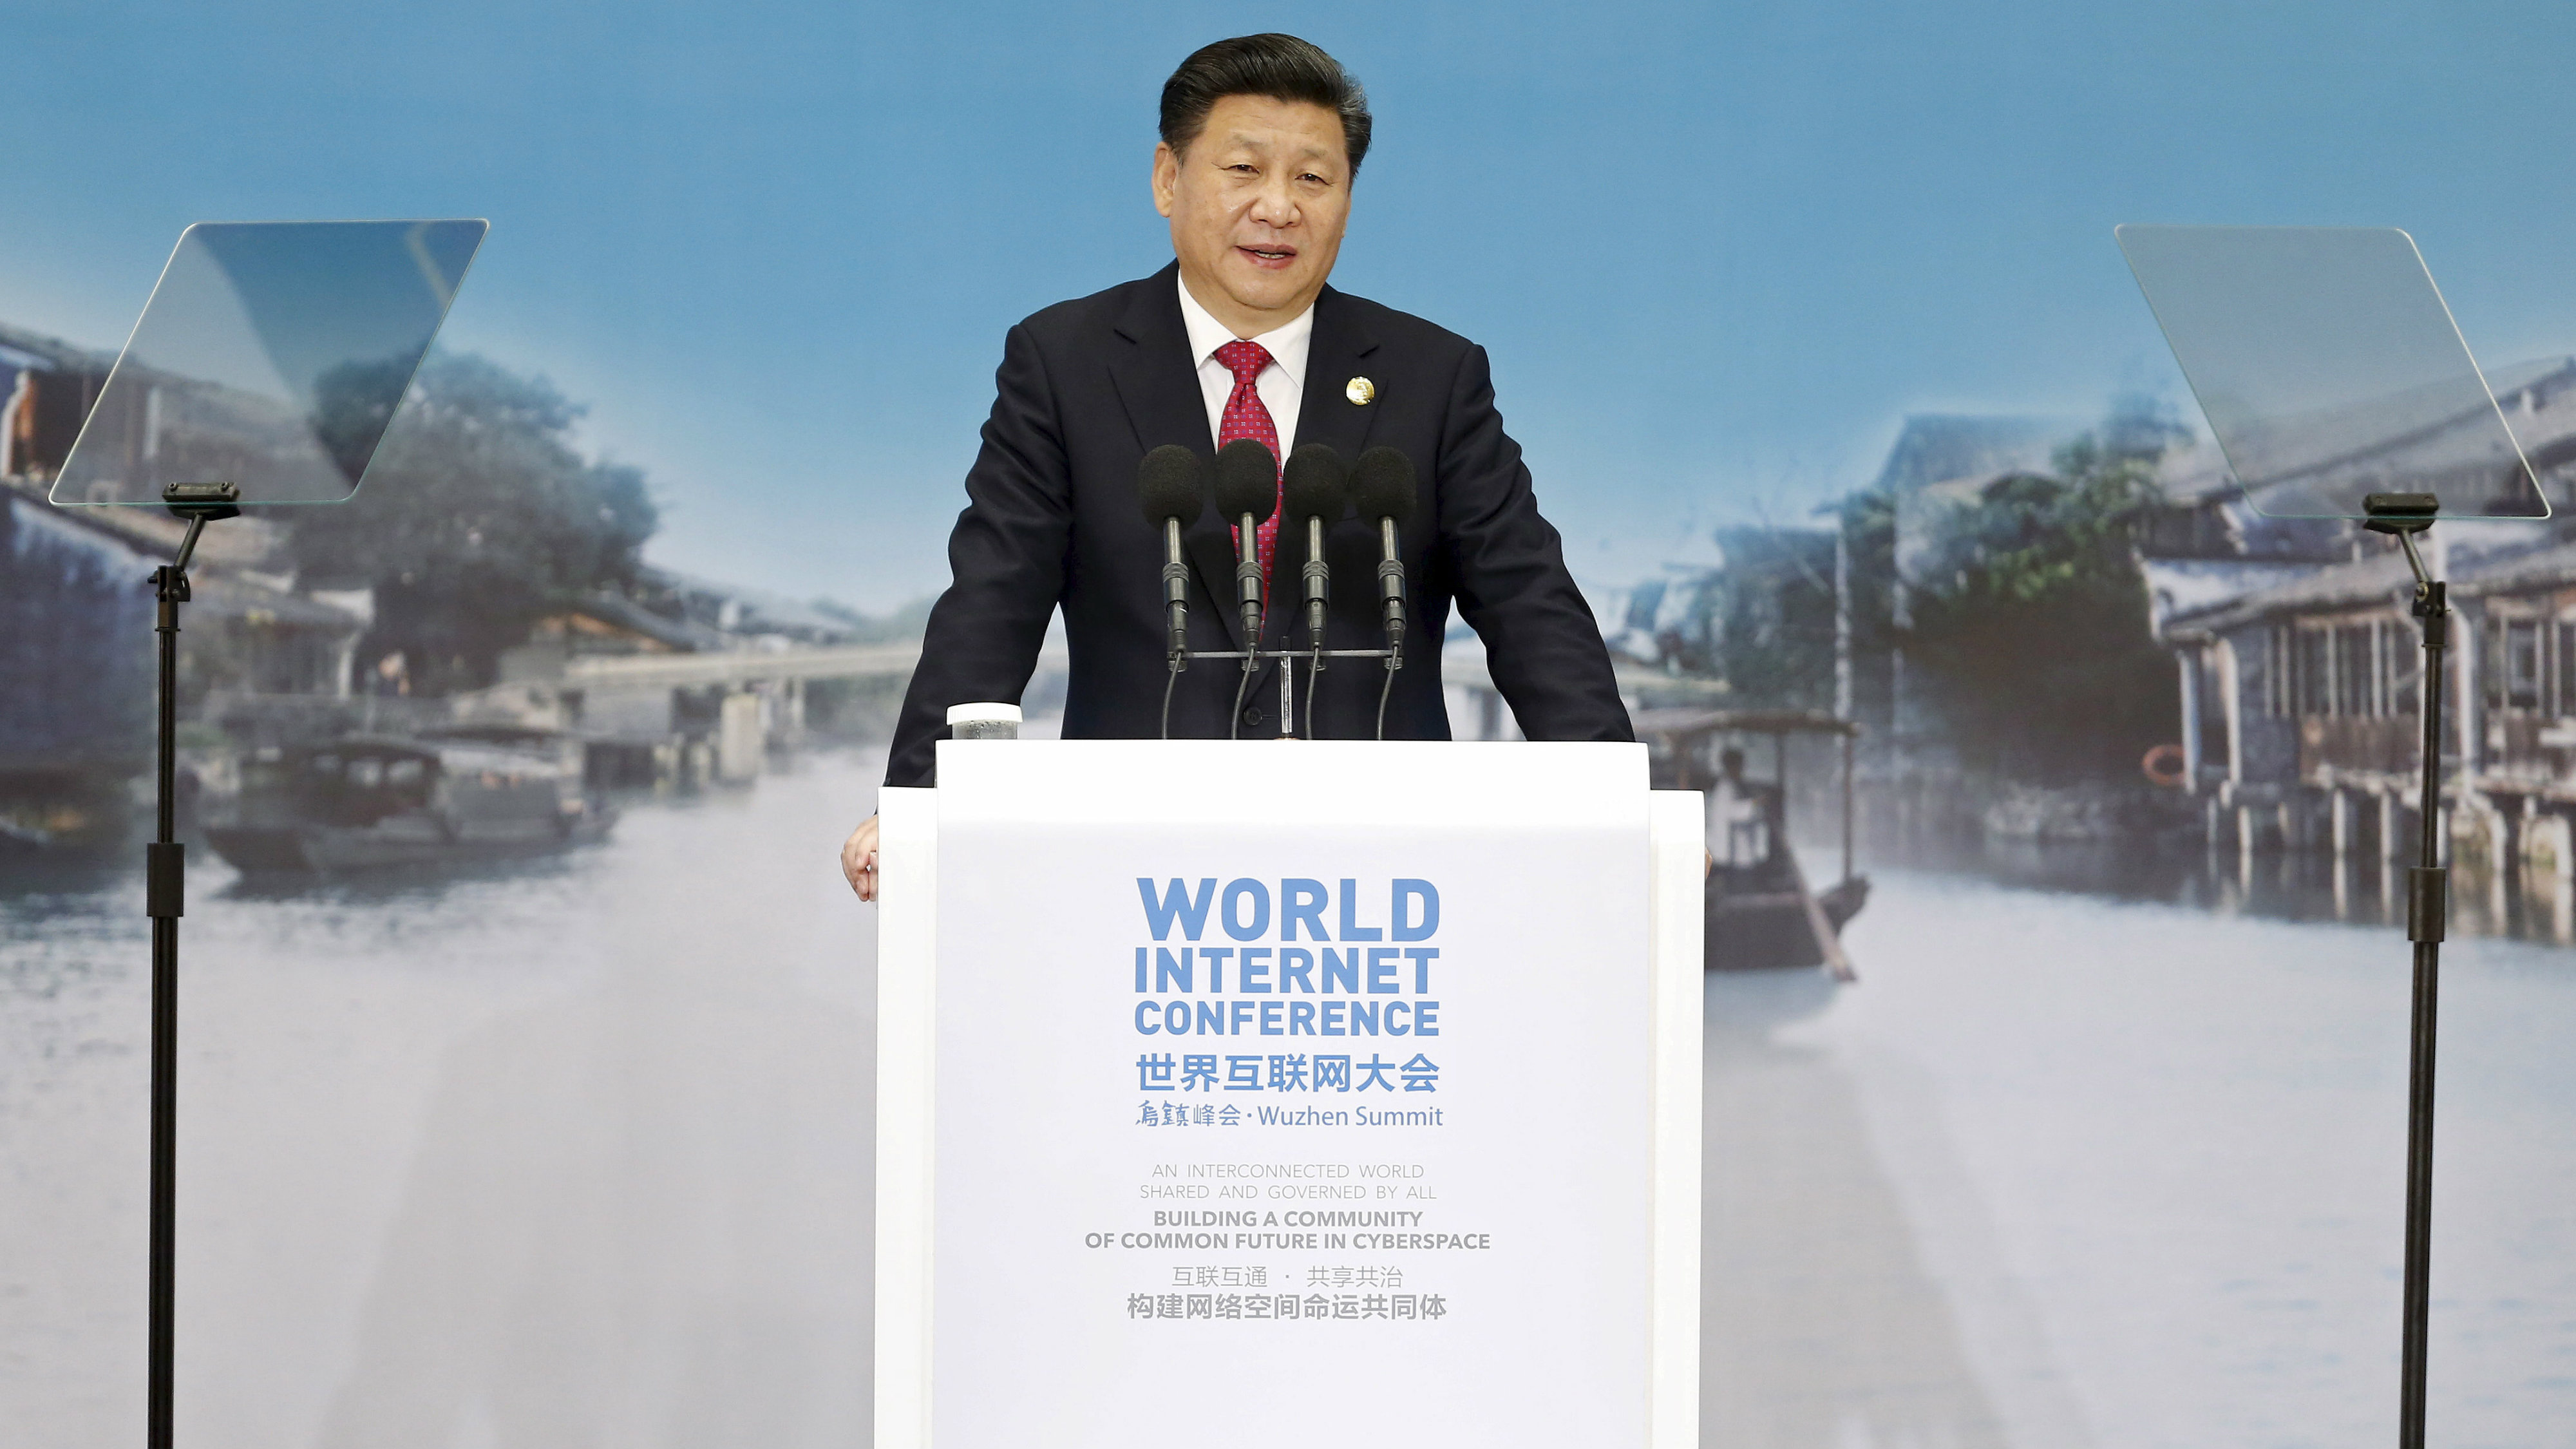 China's President Xi Jinping speaks during the opening ceremony of the 2nd annual World Internet Conference in Wuzhen town of Jiaxing, Zhejiang province, China, in this December 16, 2015 file picture.